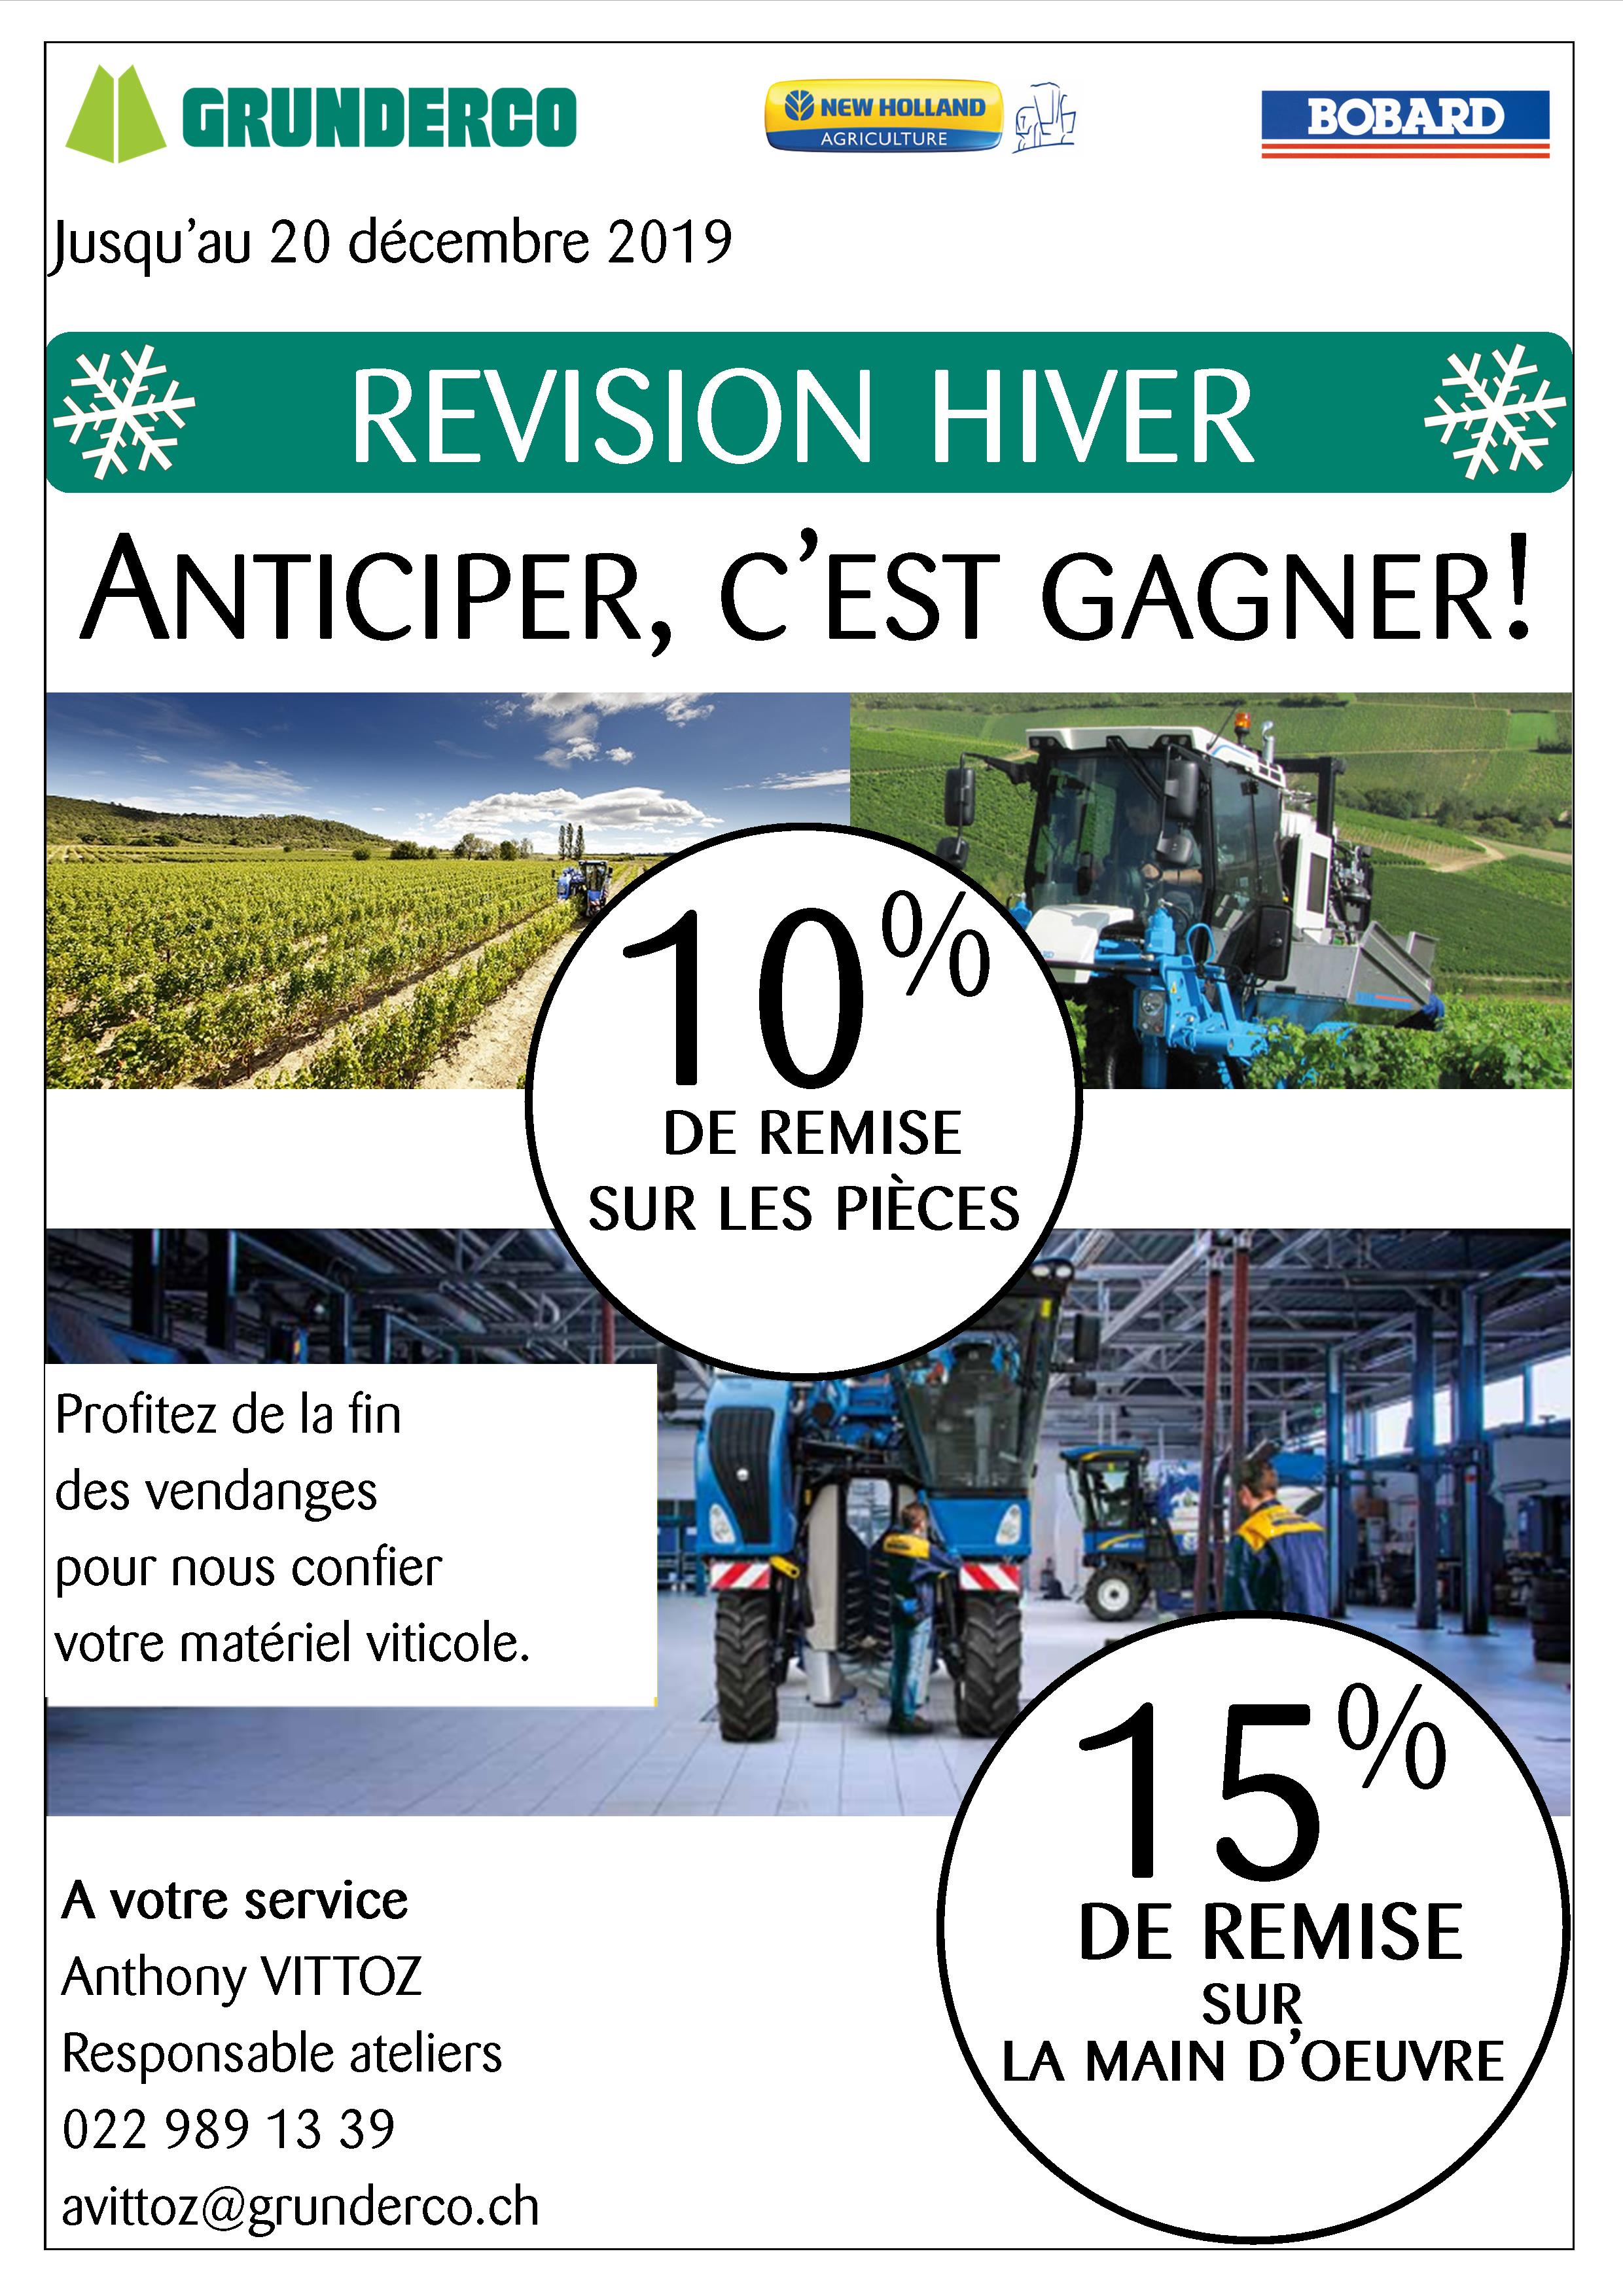 ACTION, REVISION HIVER!